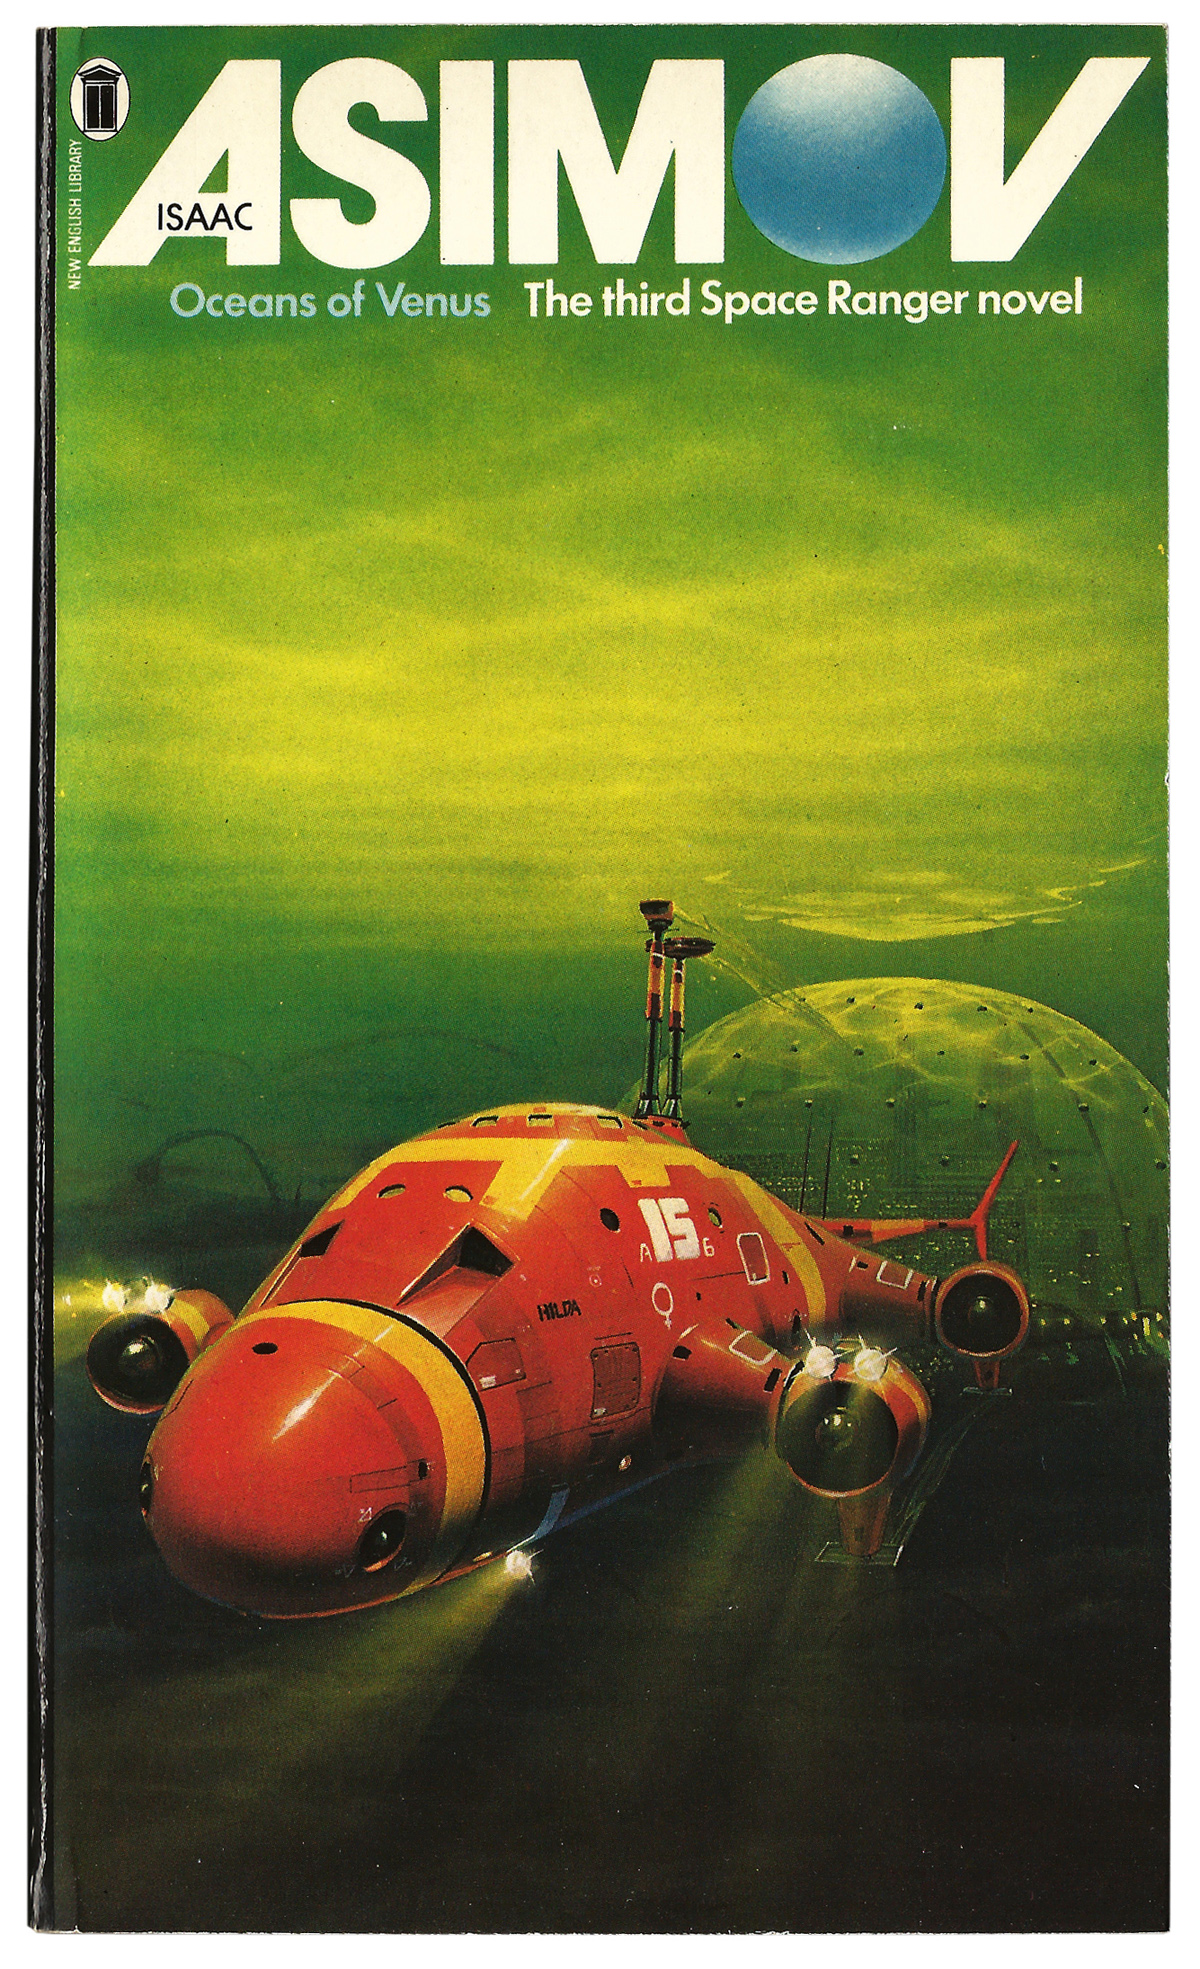 Paperback Covers 8 Peter Elson S Space Ranger Series